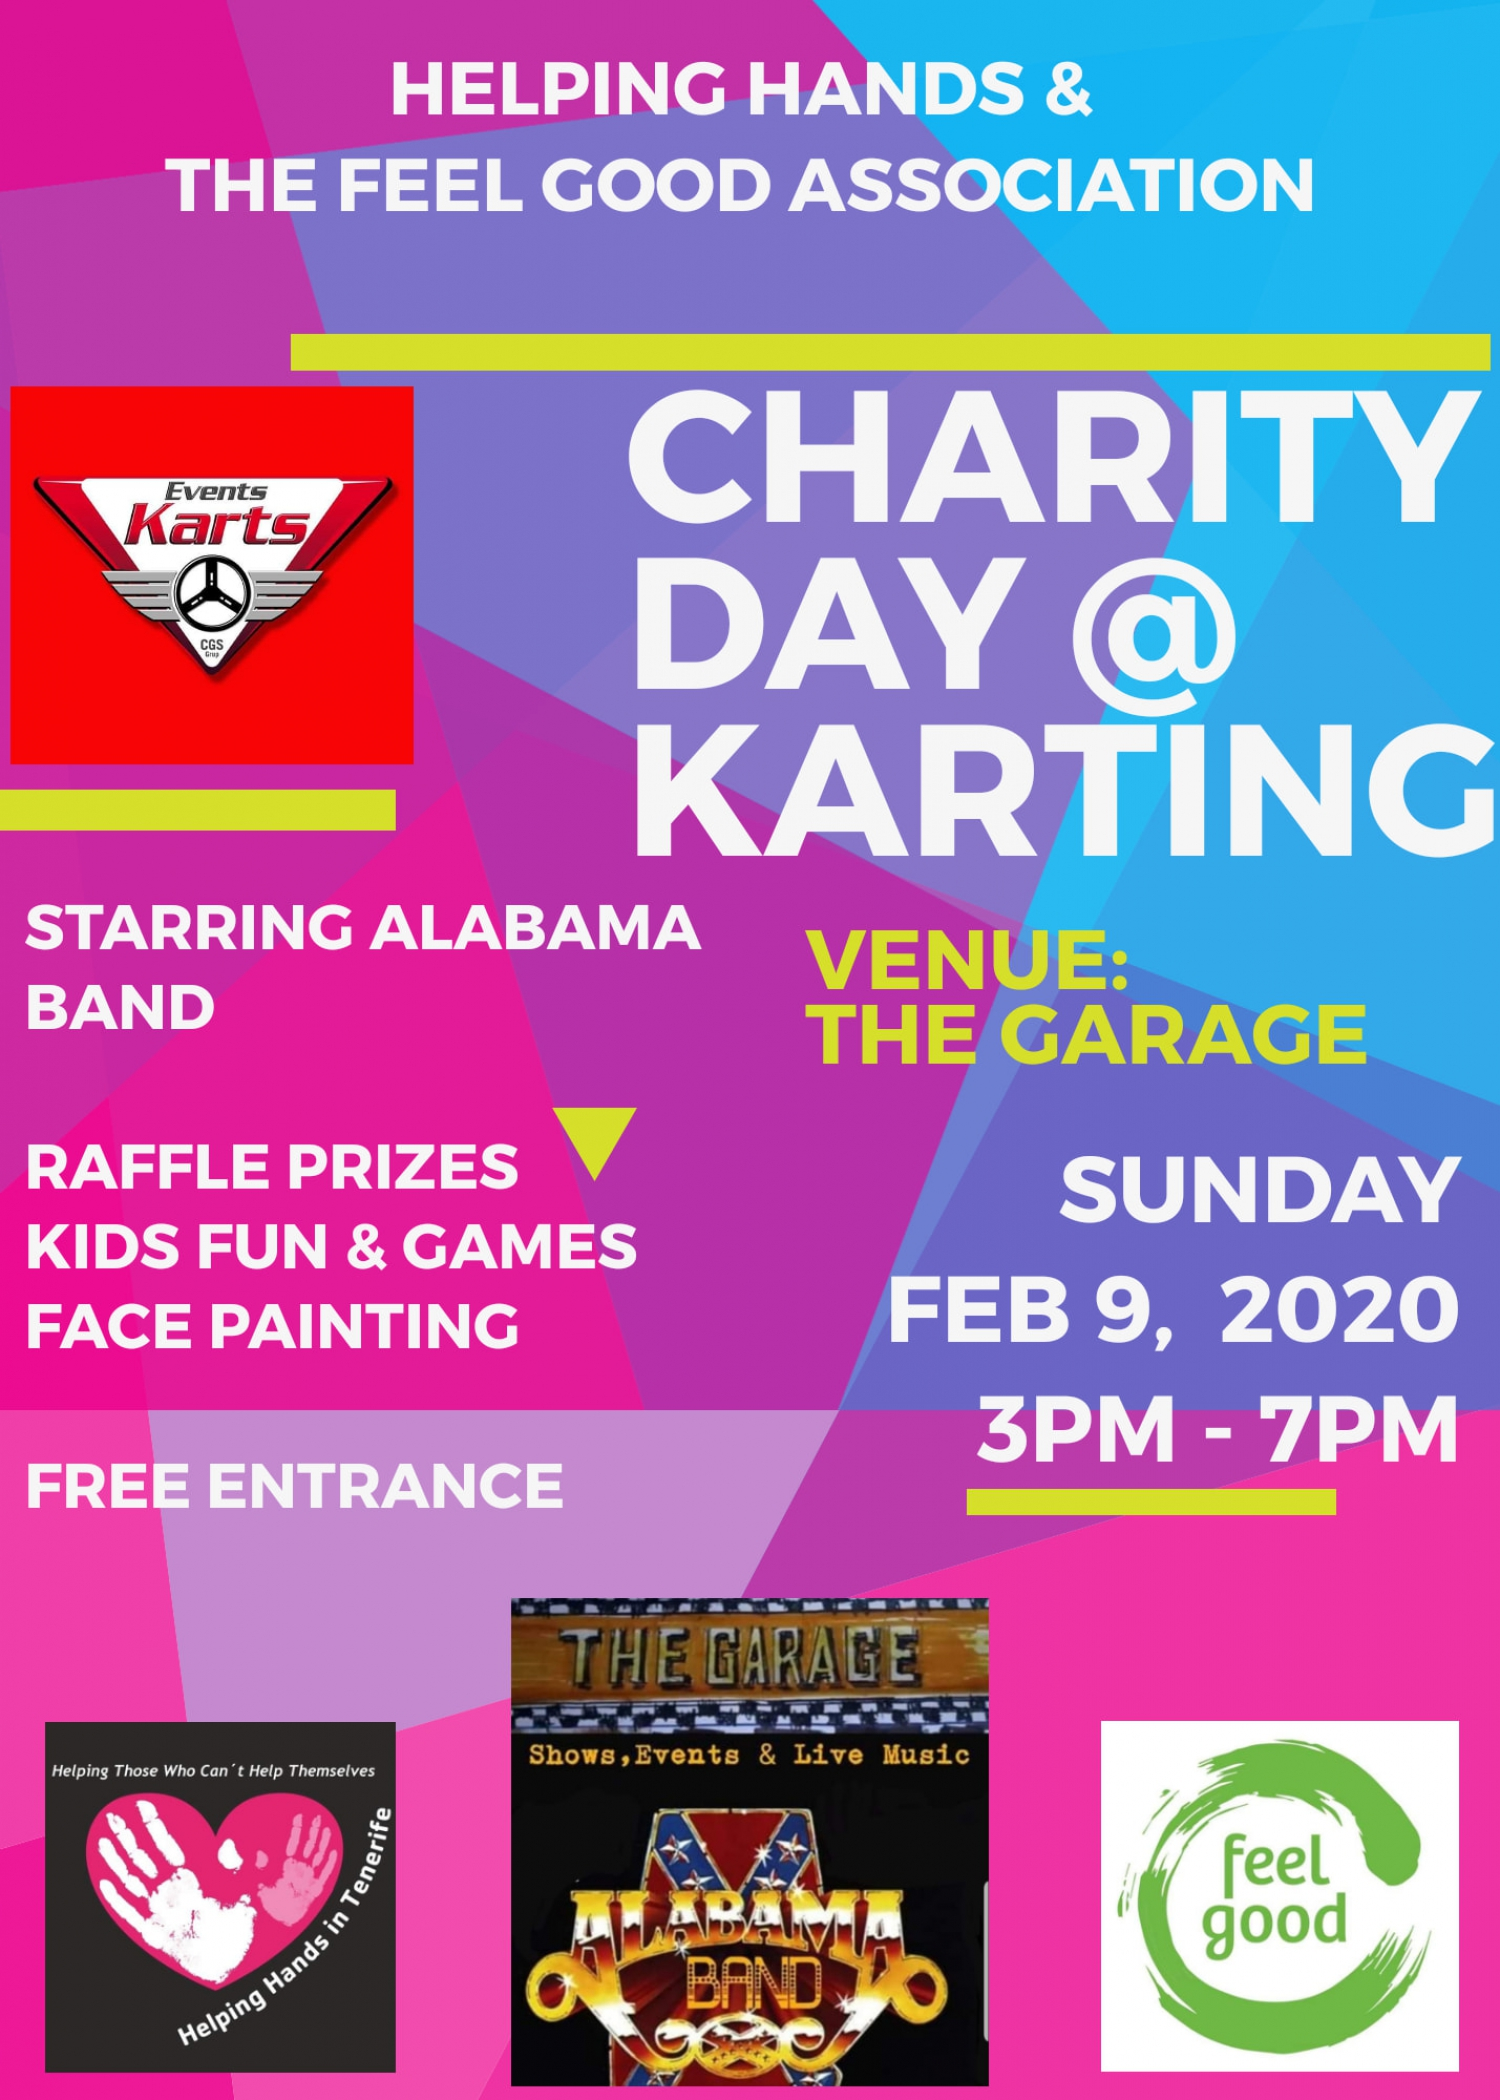 The New Karting Las Americas Charity Day